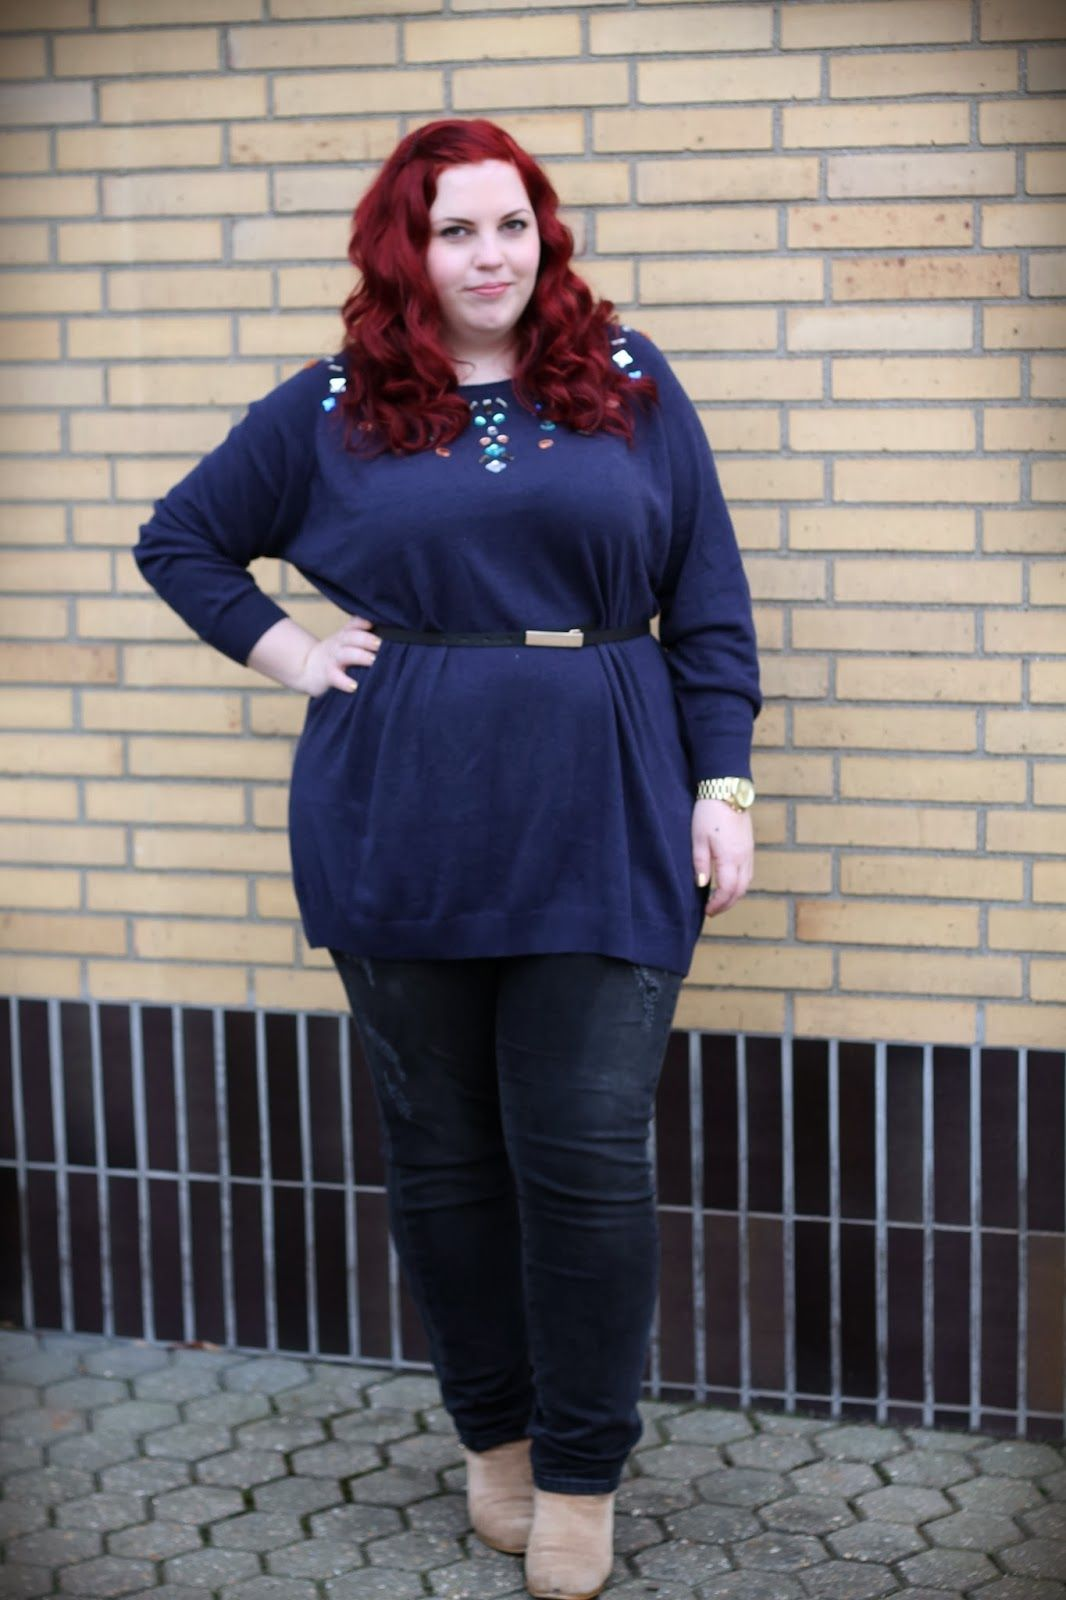 Curvy Sequins - Plus Size Outfit & Nail Design Blog: New JUNAROSE Outfit